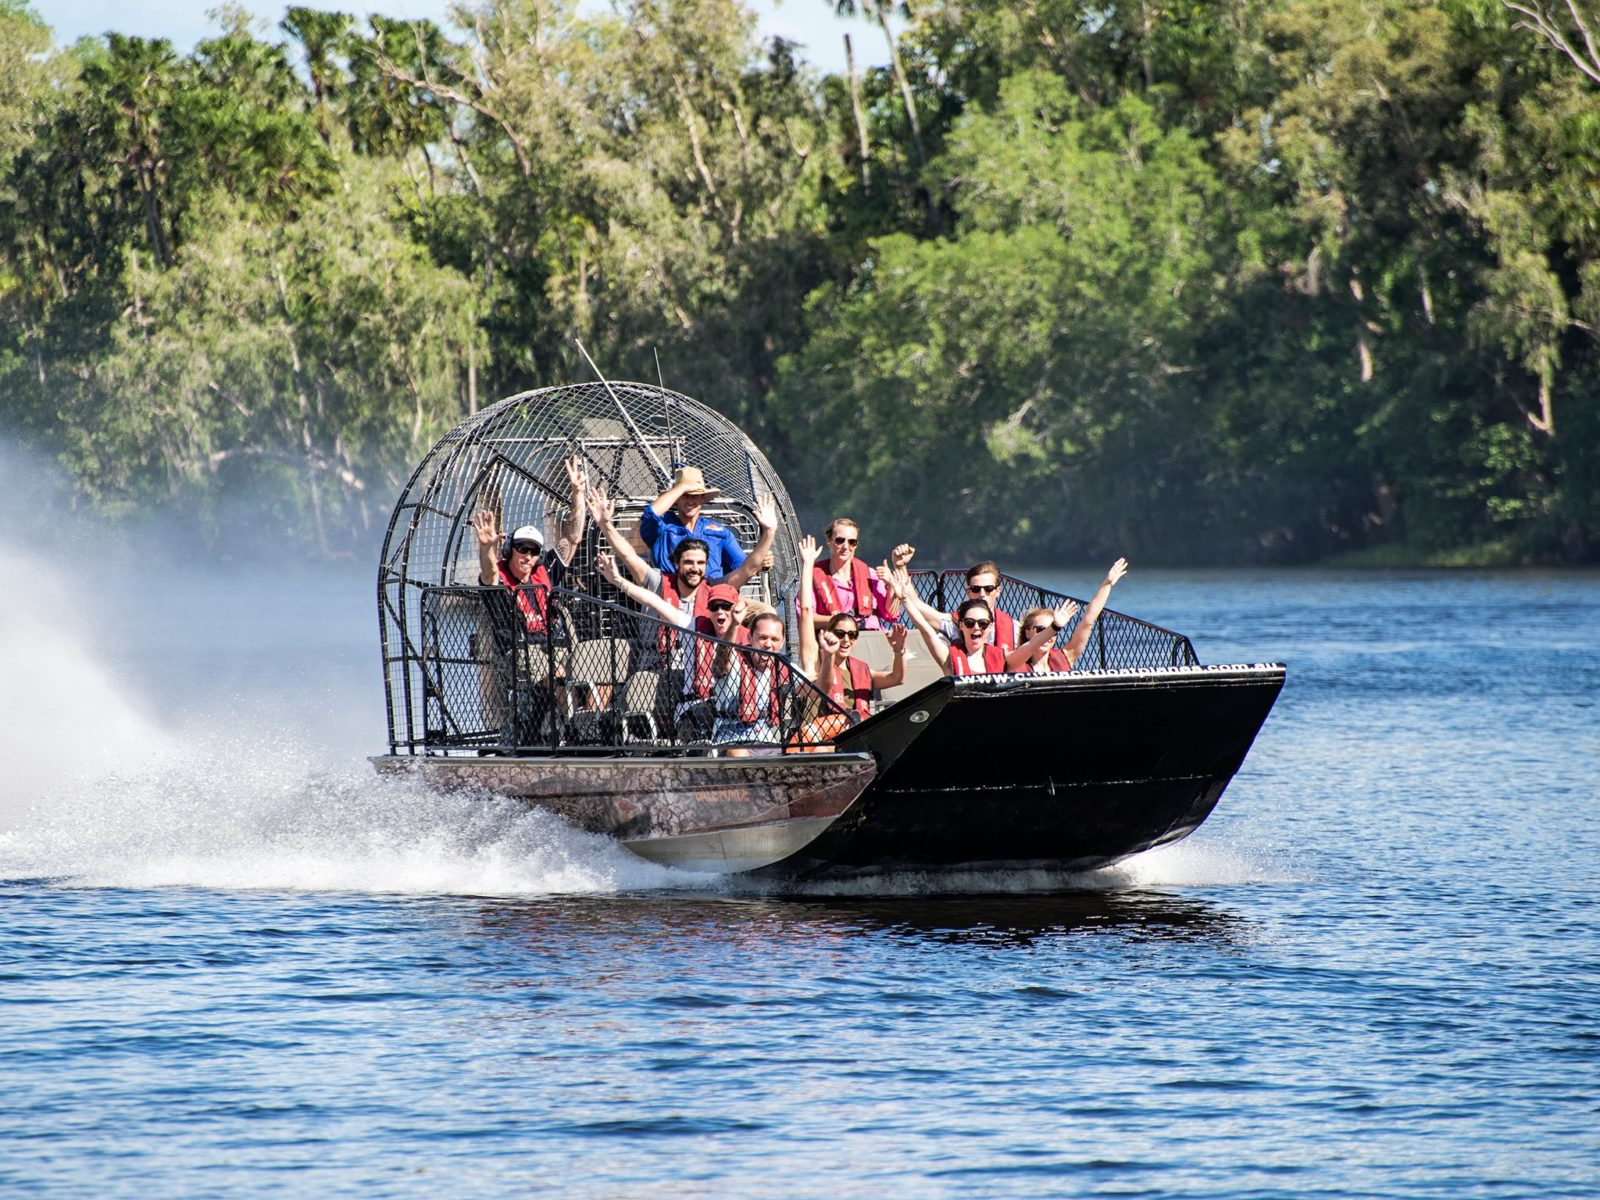 Prepare for an exhilarating airboat fast lap